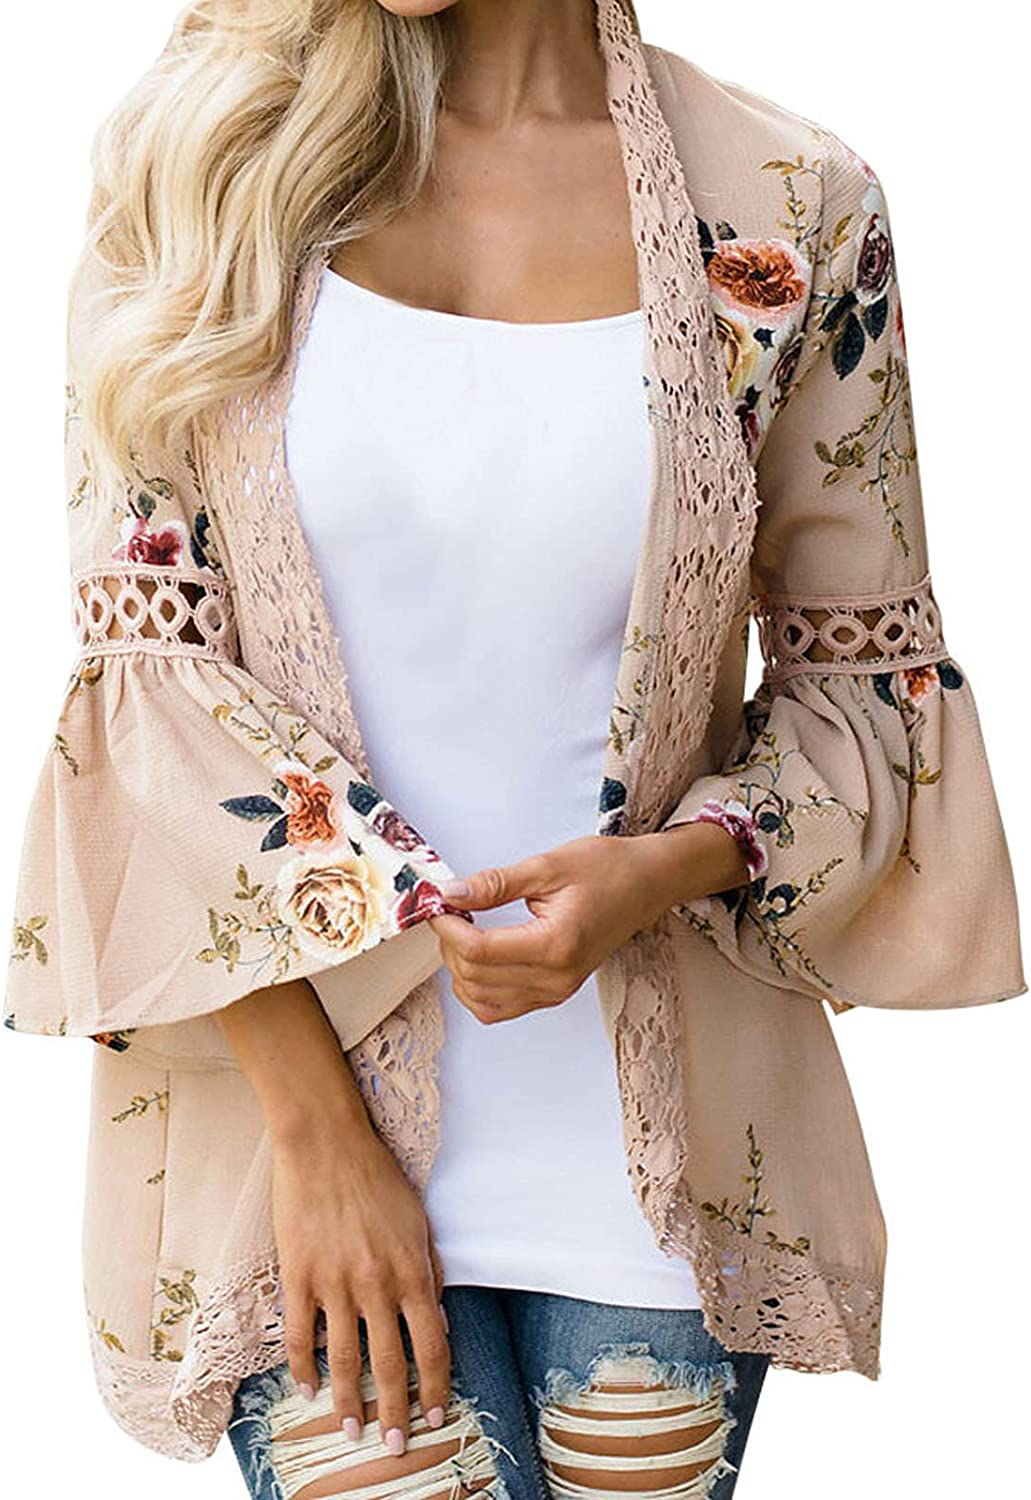 Women's 3/4 Ruffle Sleeve Chiffon Cardigan Lace Trim Open Front Blouse Floral Printed Hollow Out Beach Cover Up